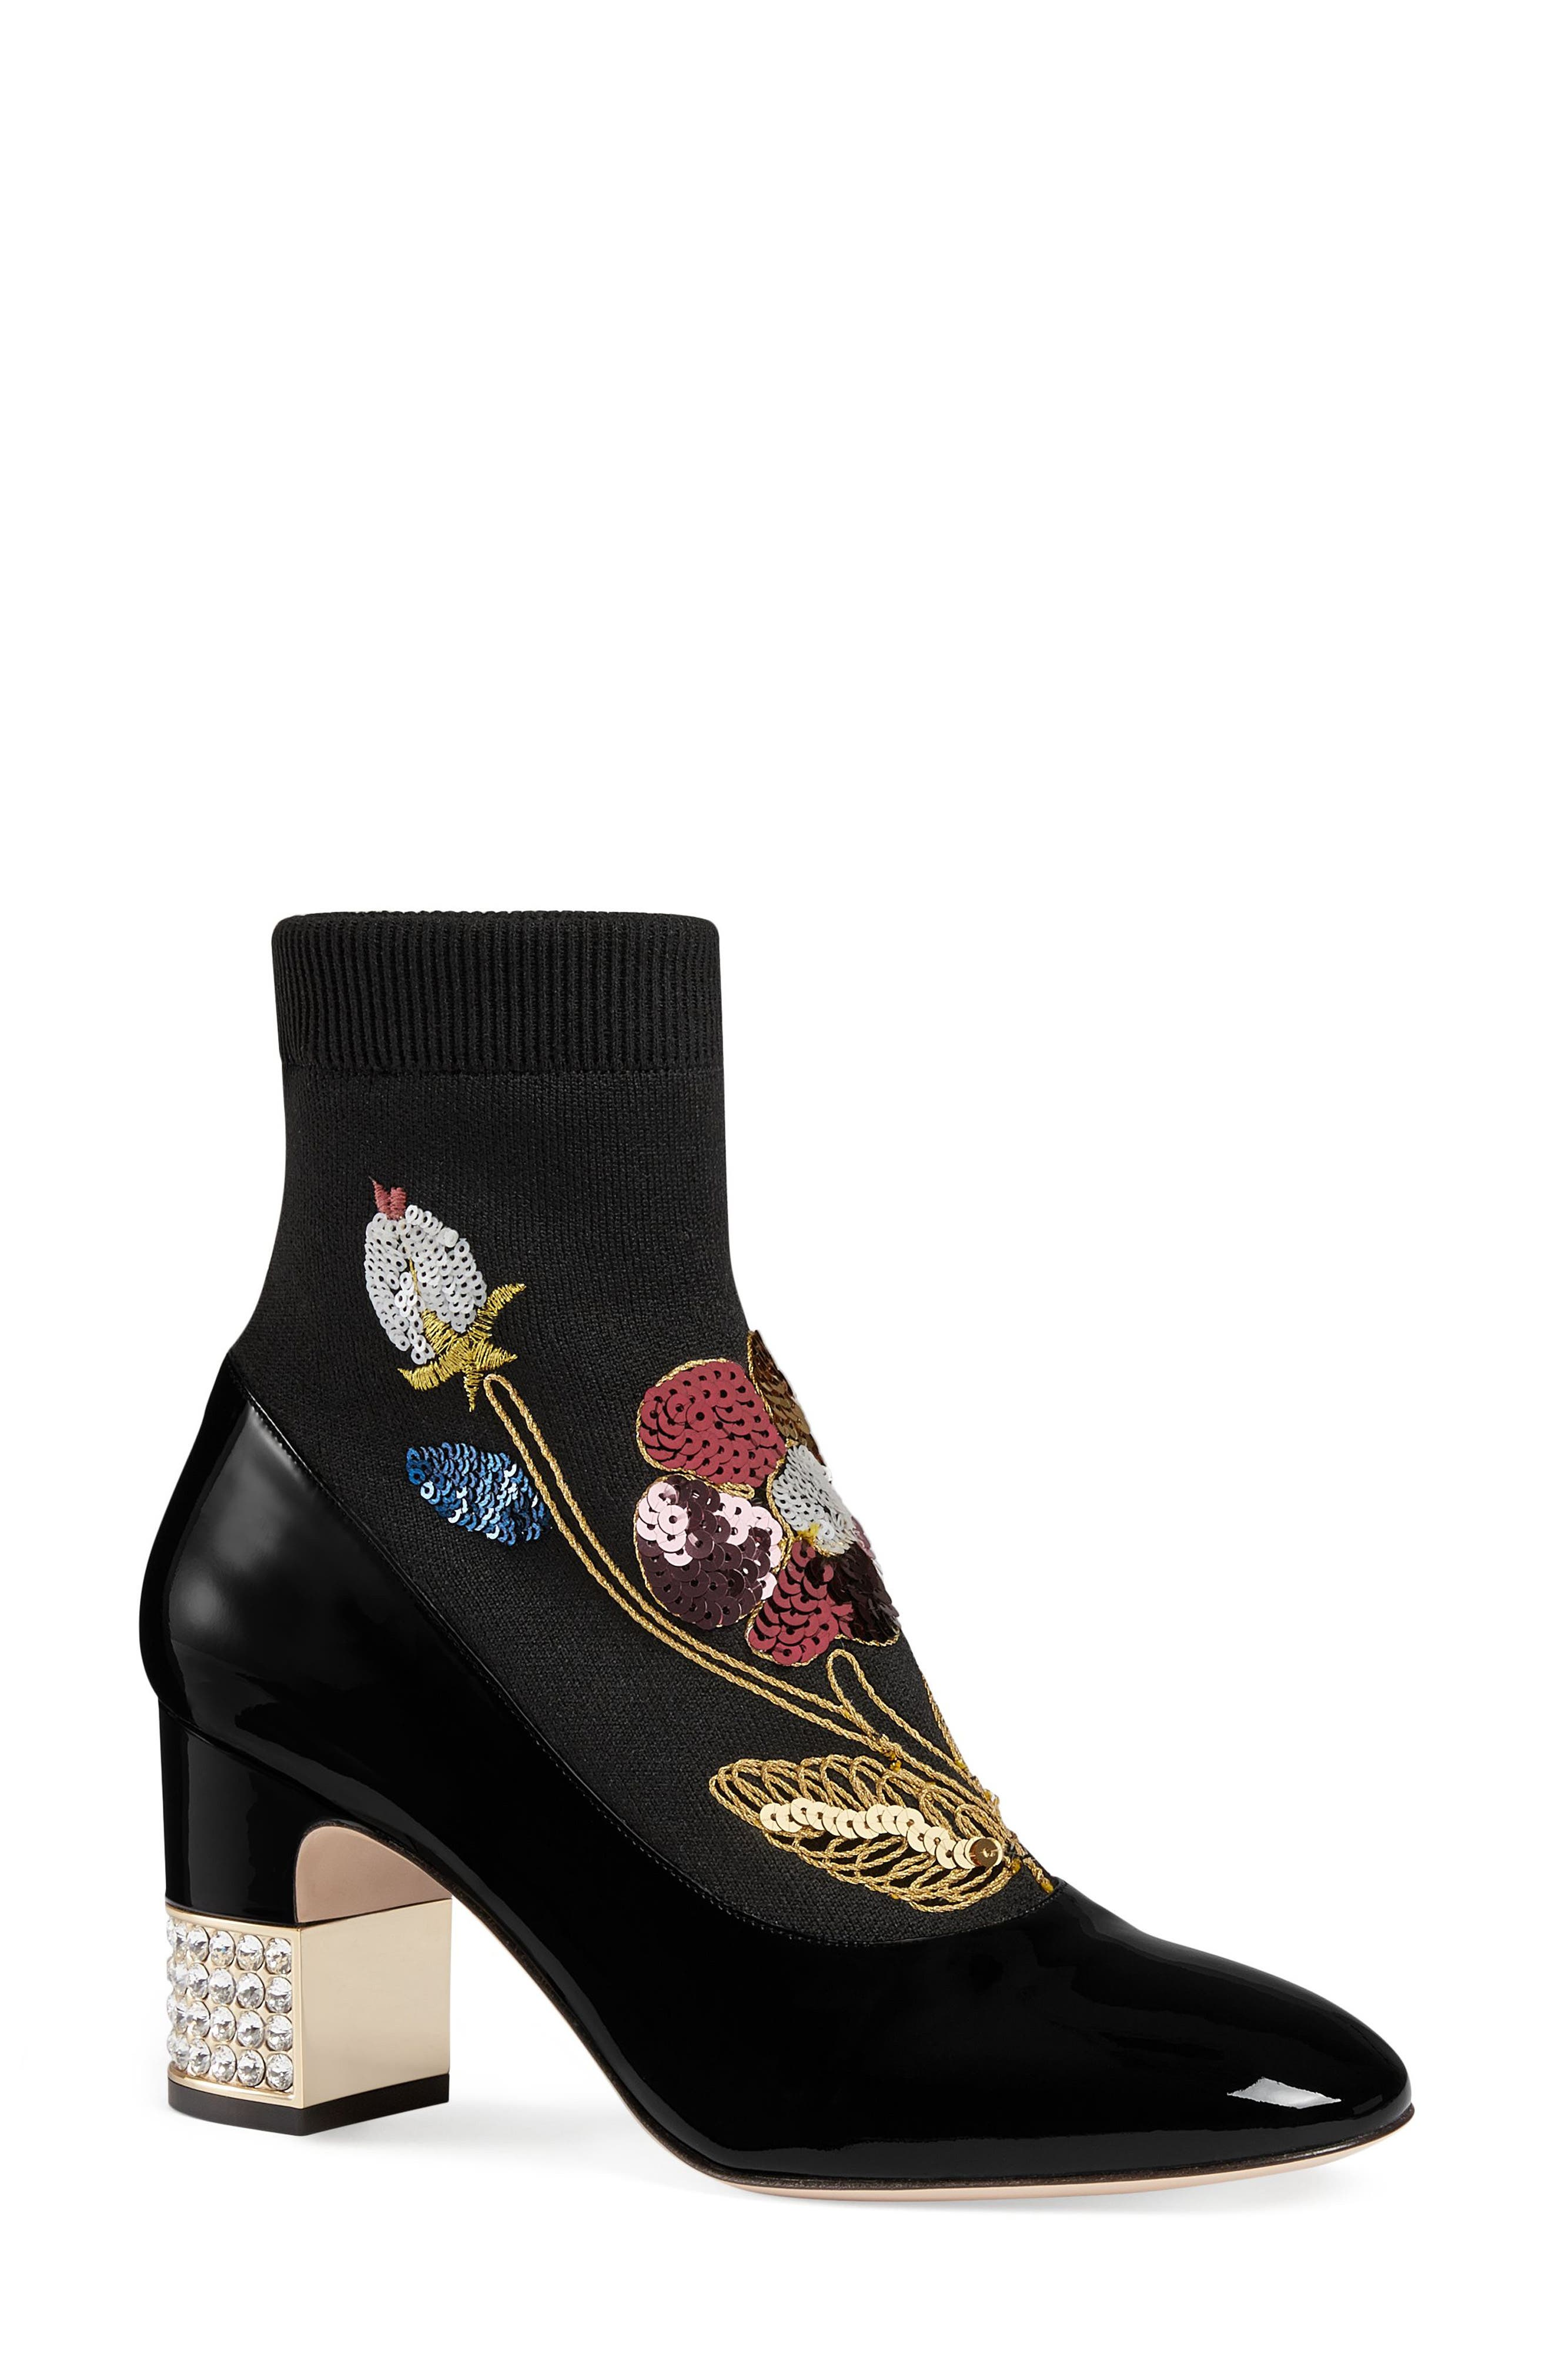 Main Image - Gucci Candy Floral Embroidered Bootie (Women)